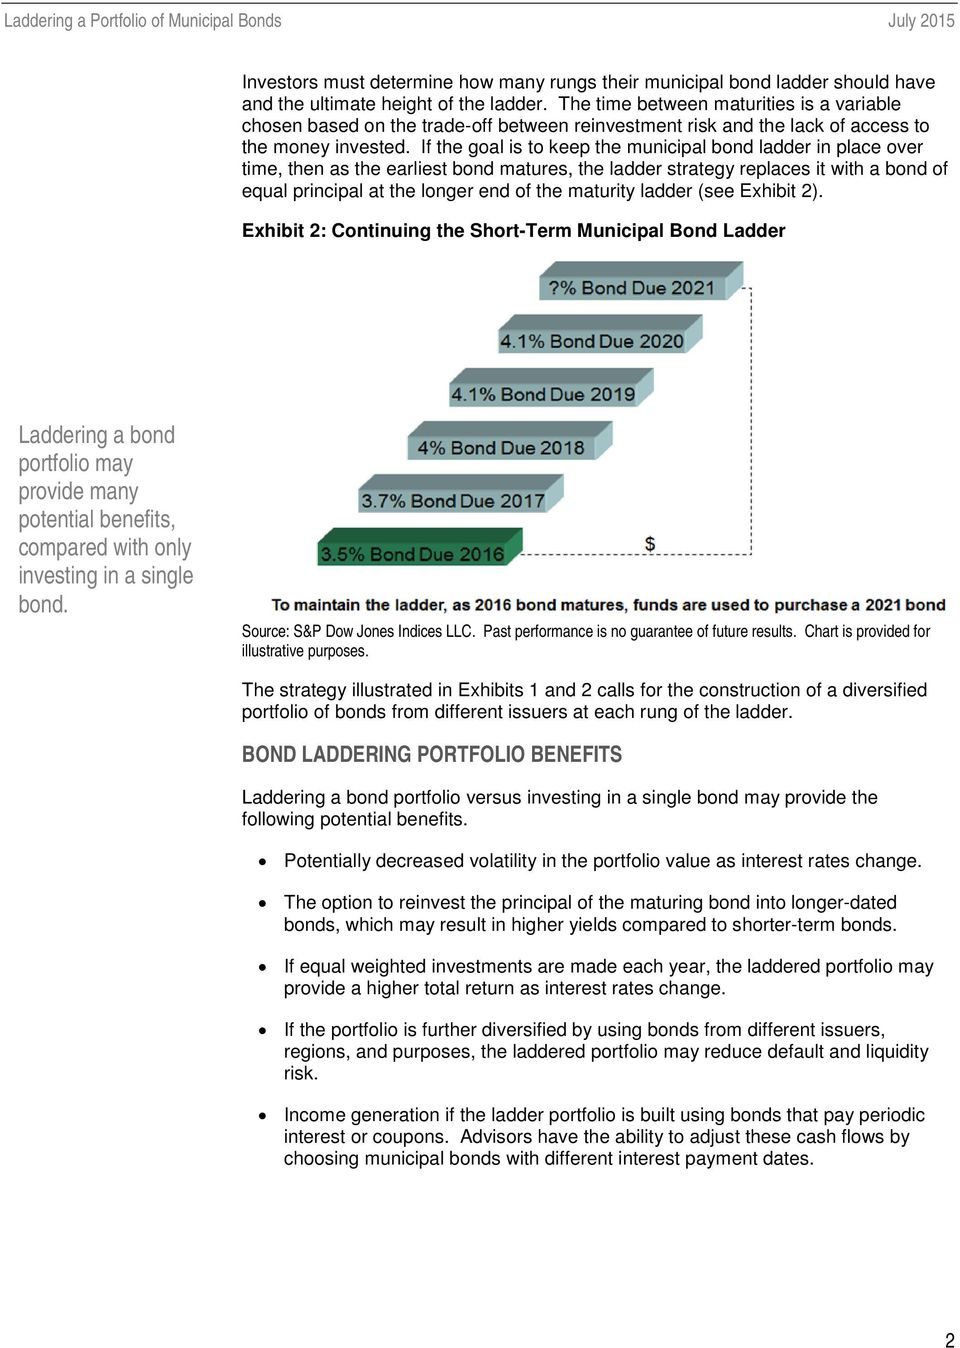 If the goal is to keep the municipal bond ladder in place over time, then as the earliest bond matures, the ladder strategy replaces it with a bond of equal principal at the longer end of the